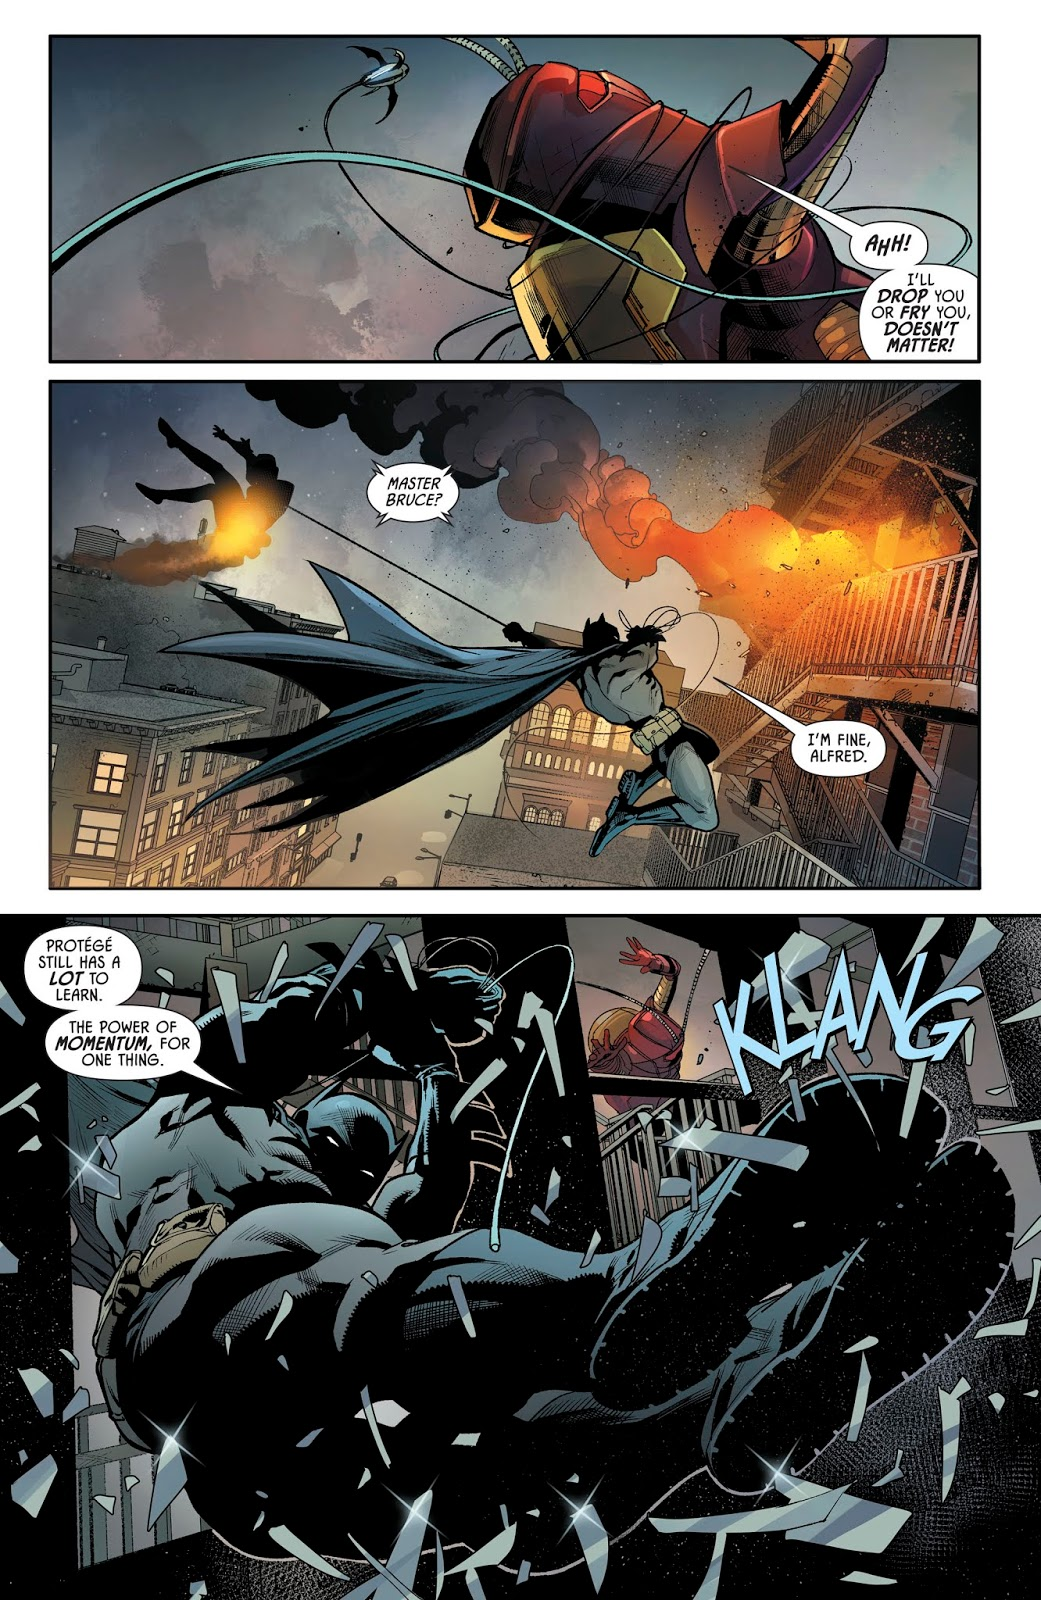 Batman VS Lady Firefly